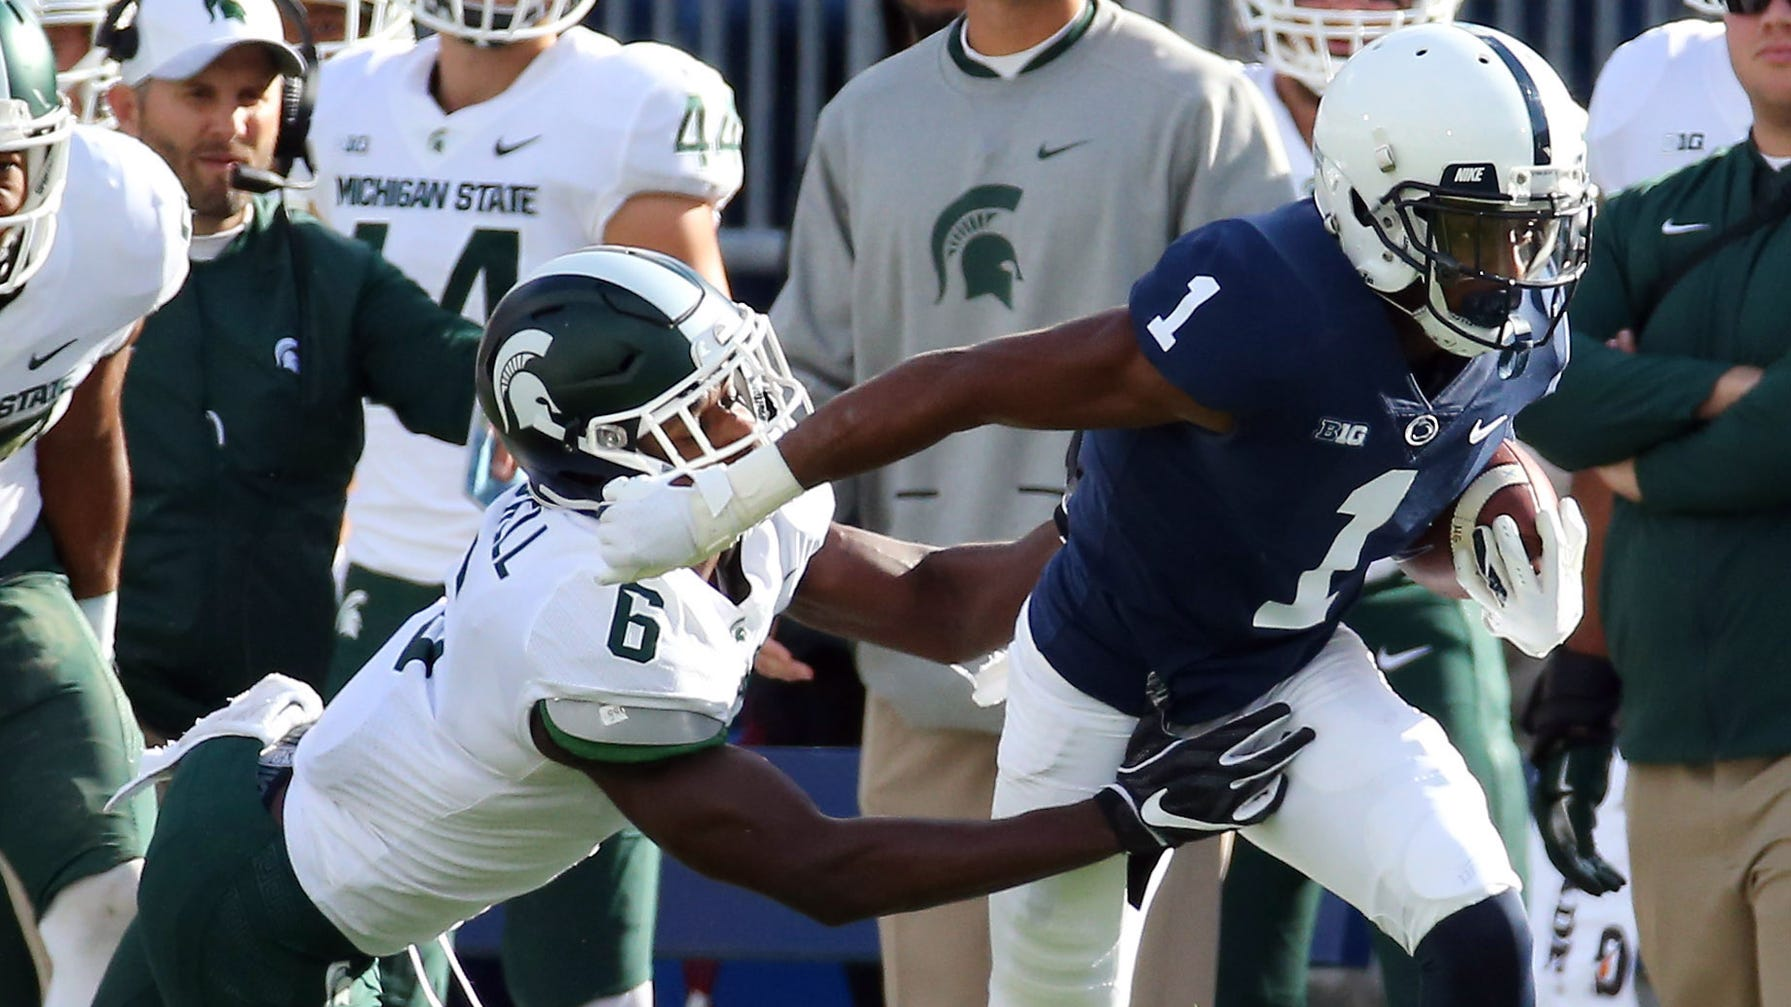 Penn State wide receiver KJ Hamler runs with the ball after a catch as Michigan State safety David Dowell defends during the first quarter on Saturday, Oct. 13, 2018, in University Park, Pa.